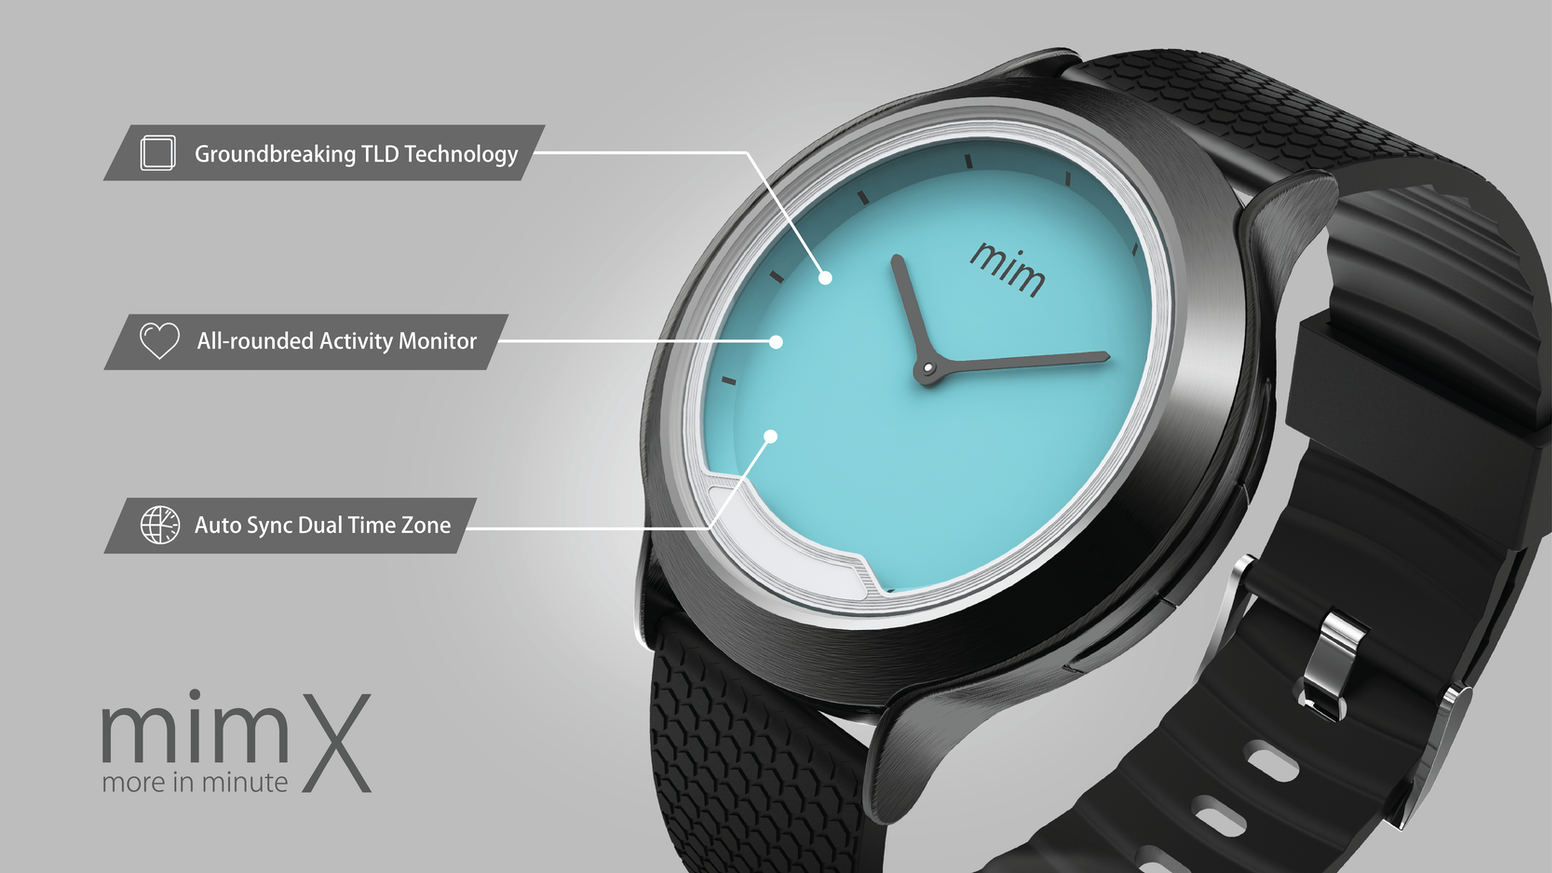 Powerful smartwatch with TLD technology. Embrace modern smarts without compromising classic elegance.